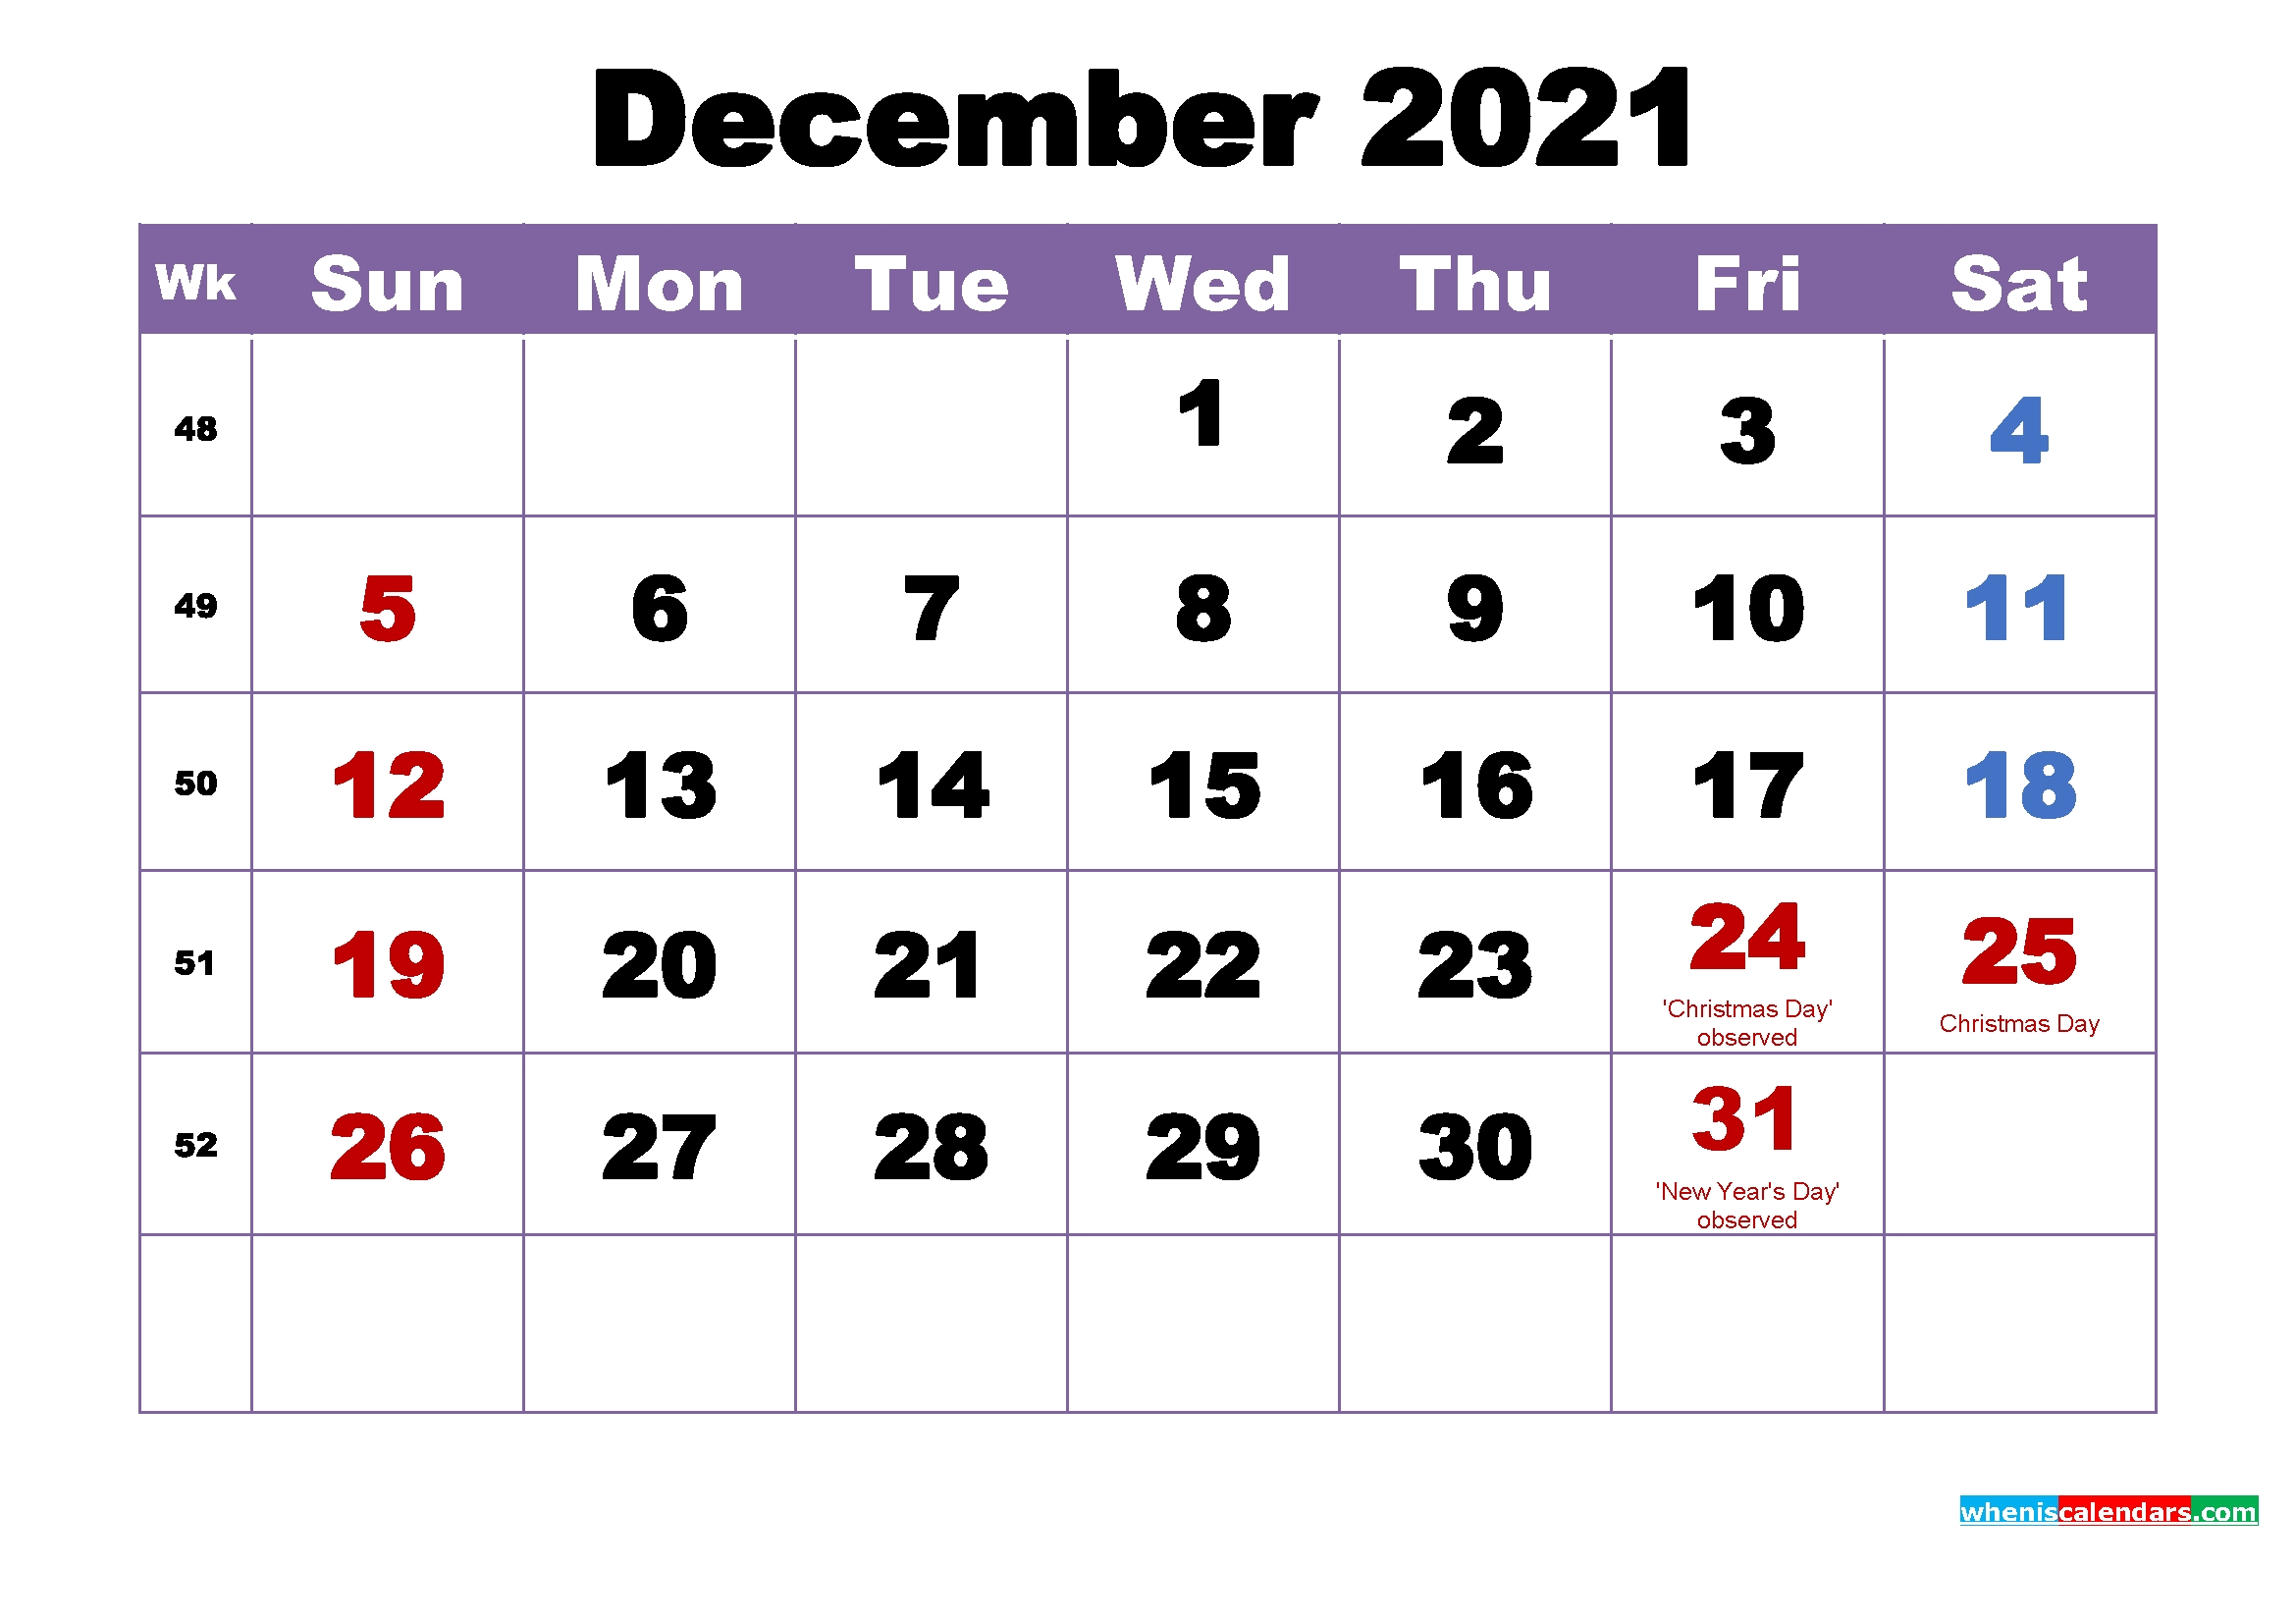 December 2021 Printable Calendar With Holidays Word, Pdf